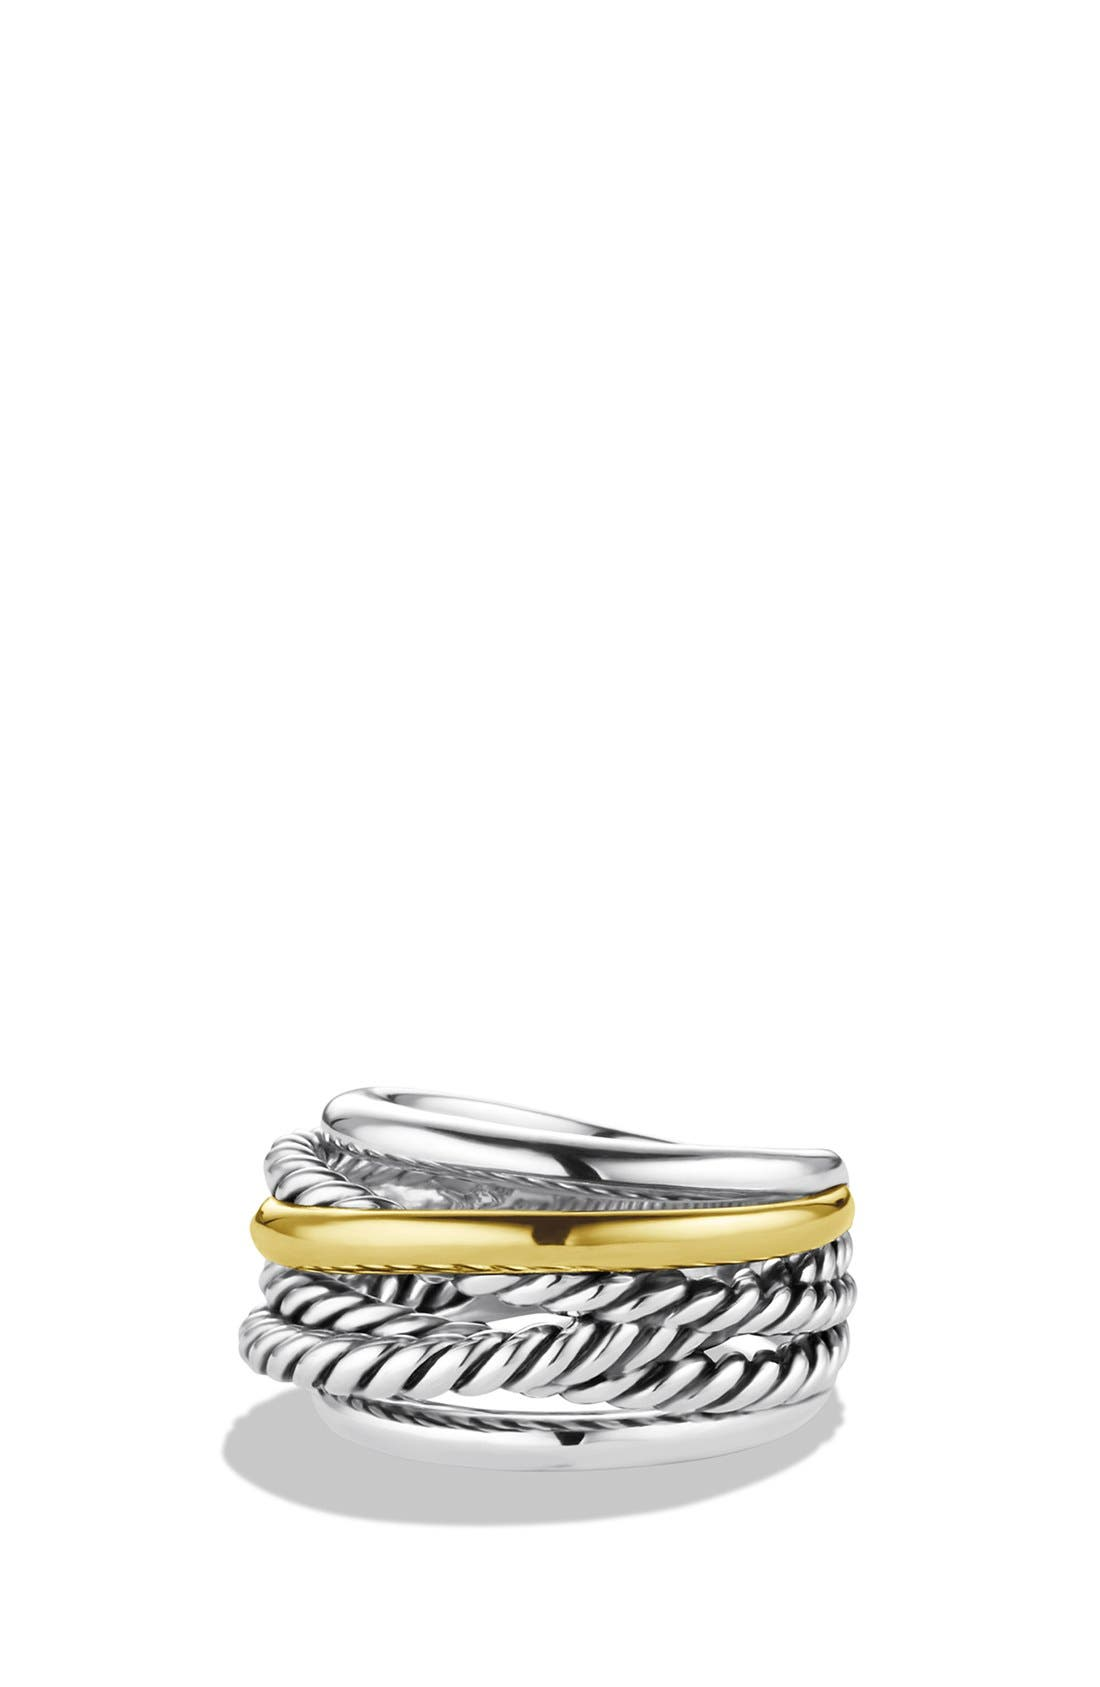 Alternate Image 1 Selected - David Yurman 'Crossover' Narrow Ring with Gold